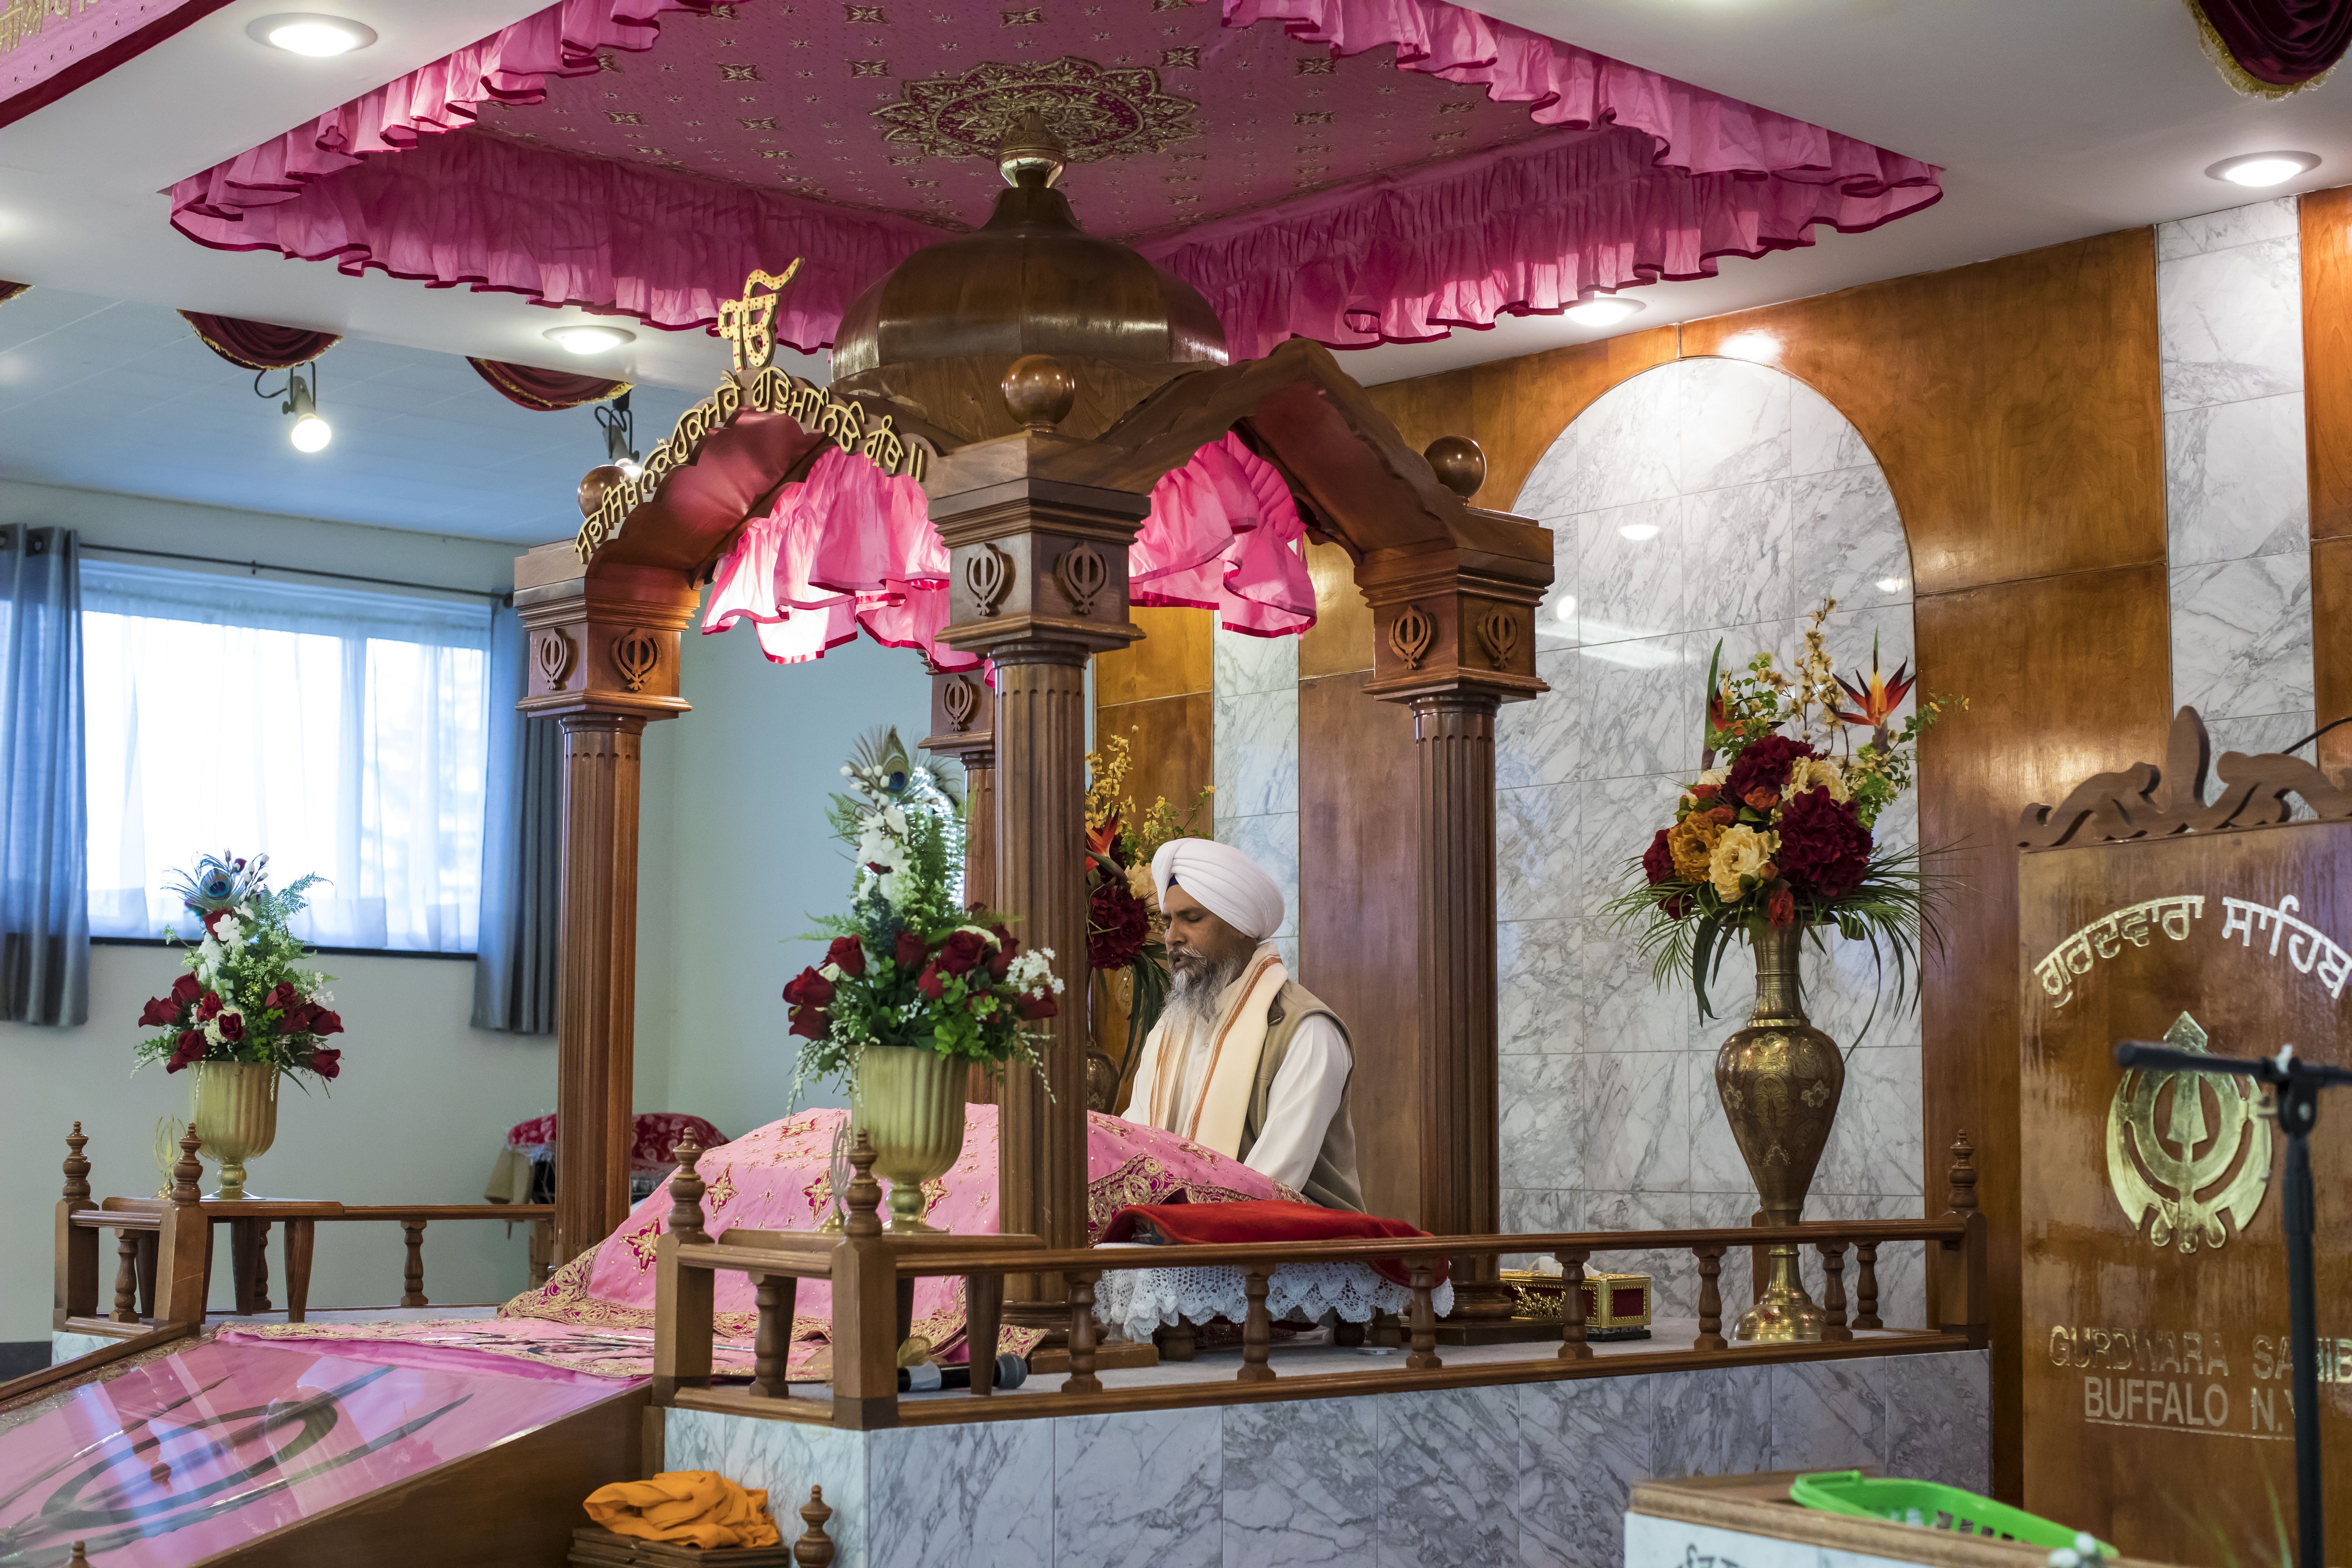 Sujen Singh, the Gran Thi (or Sikh priest,) recites scripture from his place in a shrine called a palki during a service leading up to the Sikh holiday Vaisakhi at the Gurdwara Sahib in Amherst., Wednesday, April 12, 2017.  The Sikh Cultural and Educational Society of Western New York plans to build a new Gurdwara on a property they own next door to accommodate the community's growing population.  (Derek Gee/Buffalo News)